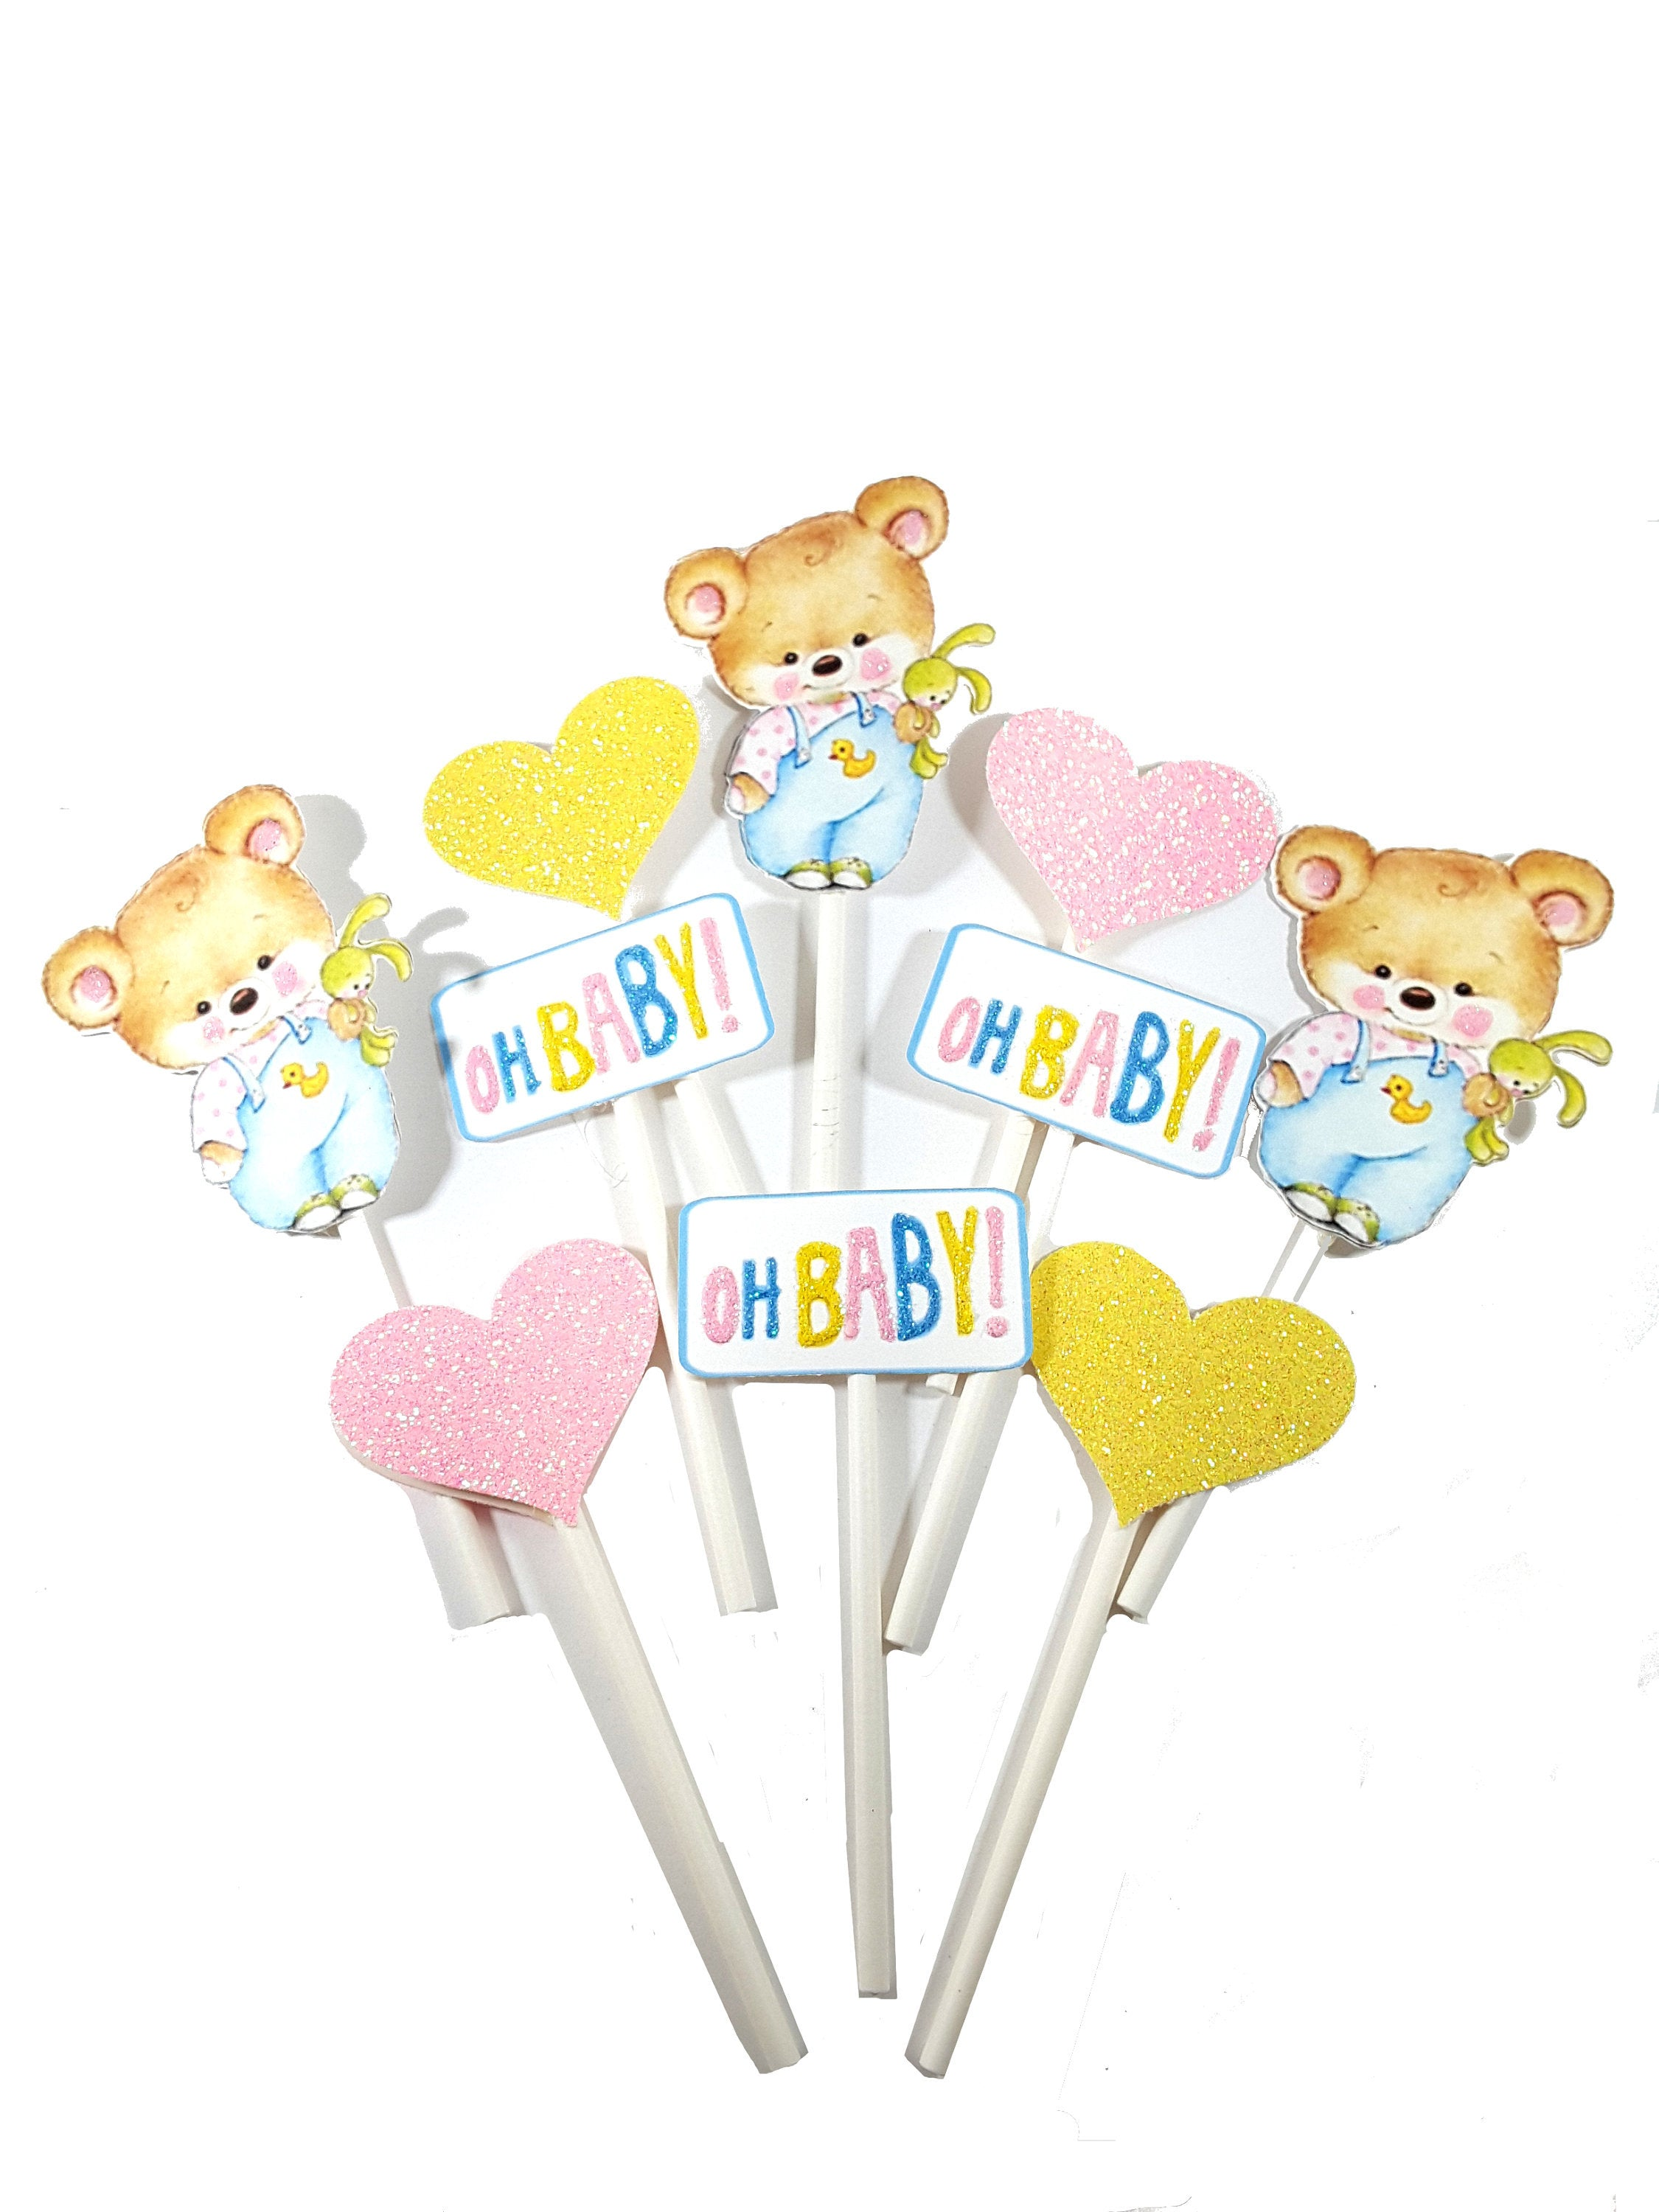 Cupcake Toppers  Featuring Teddy Bear, Oh Baby Signs and Glitter Hearts - TheLastWordBish.com